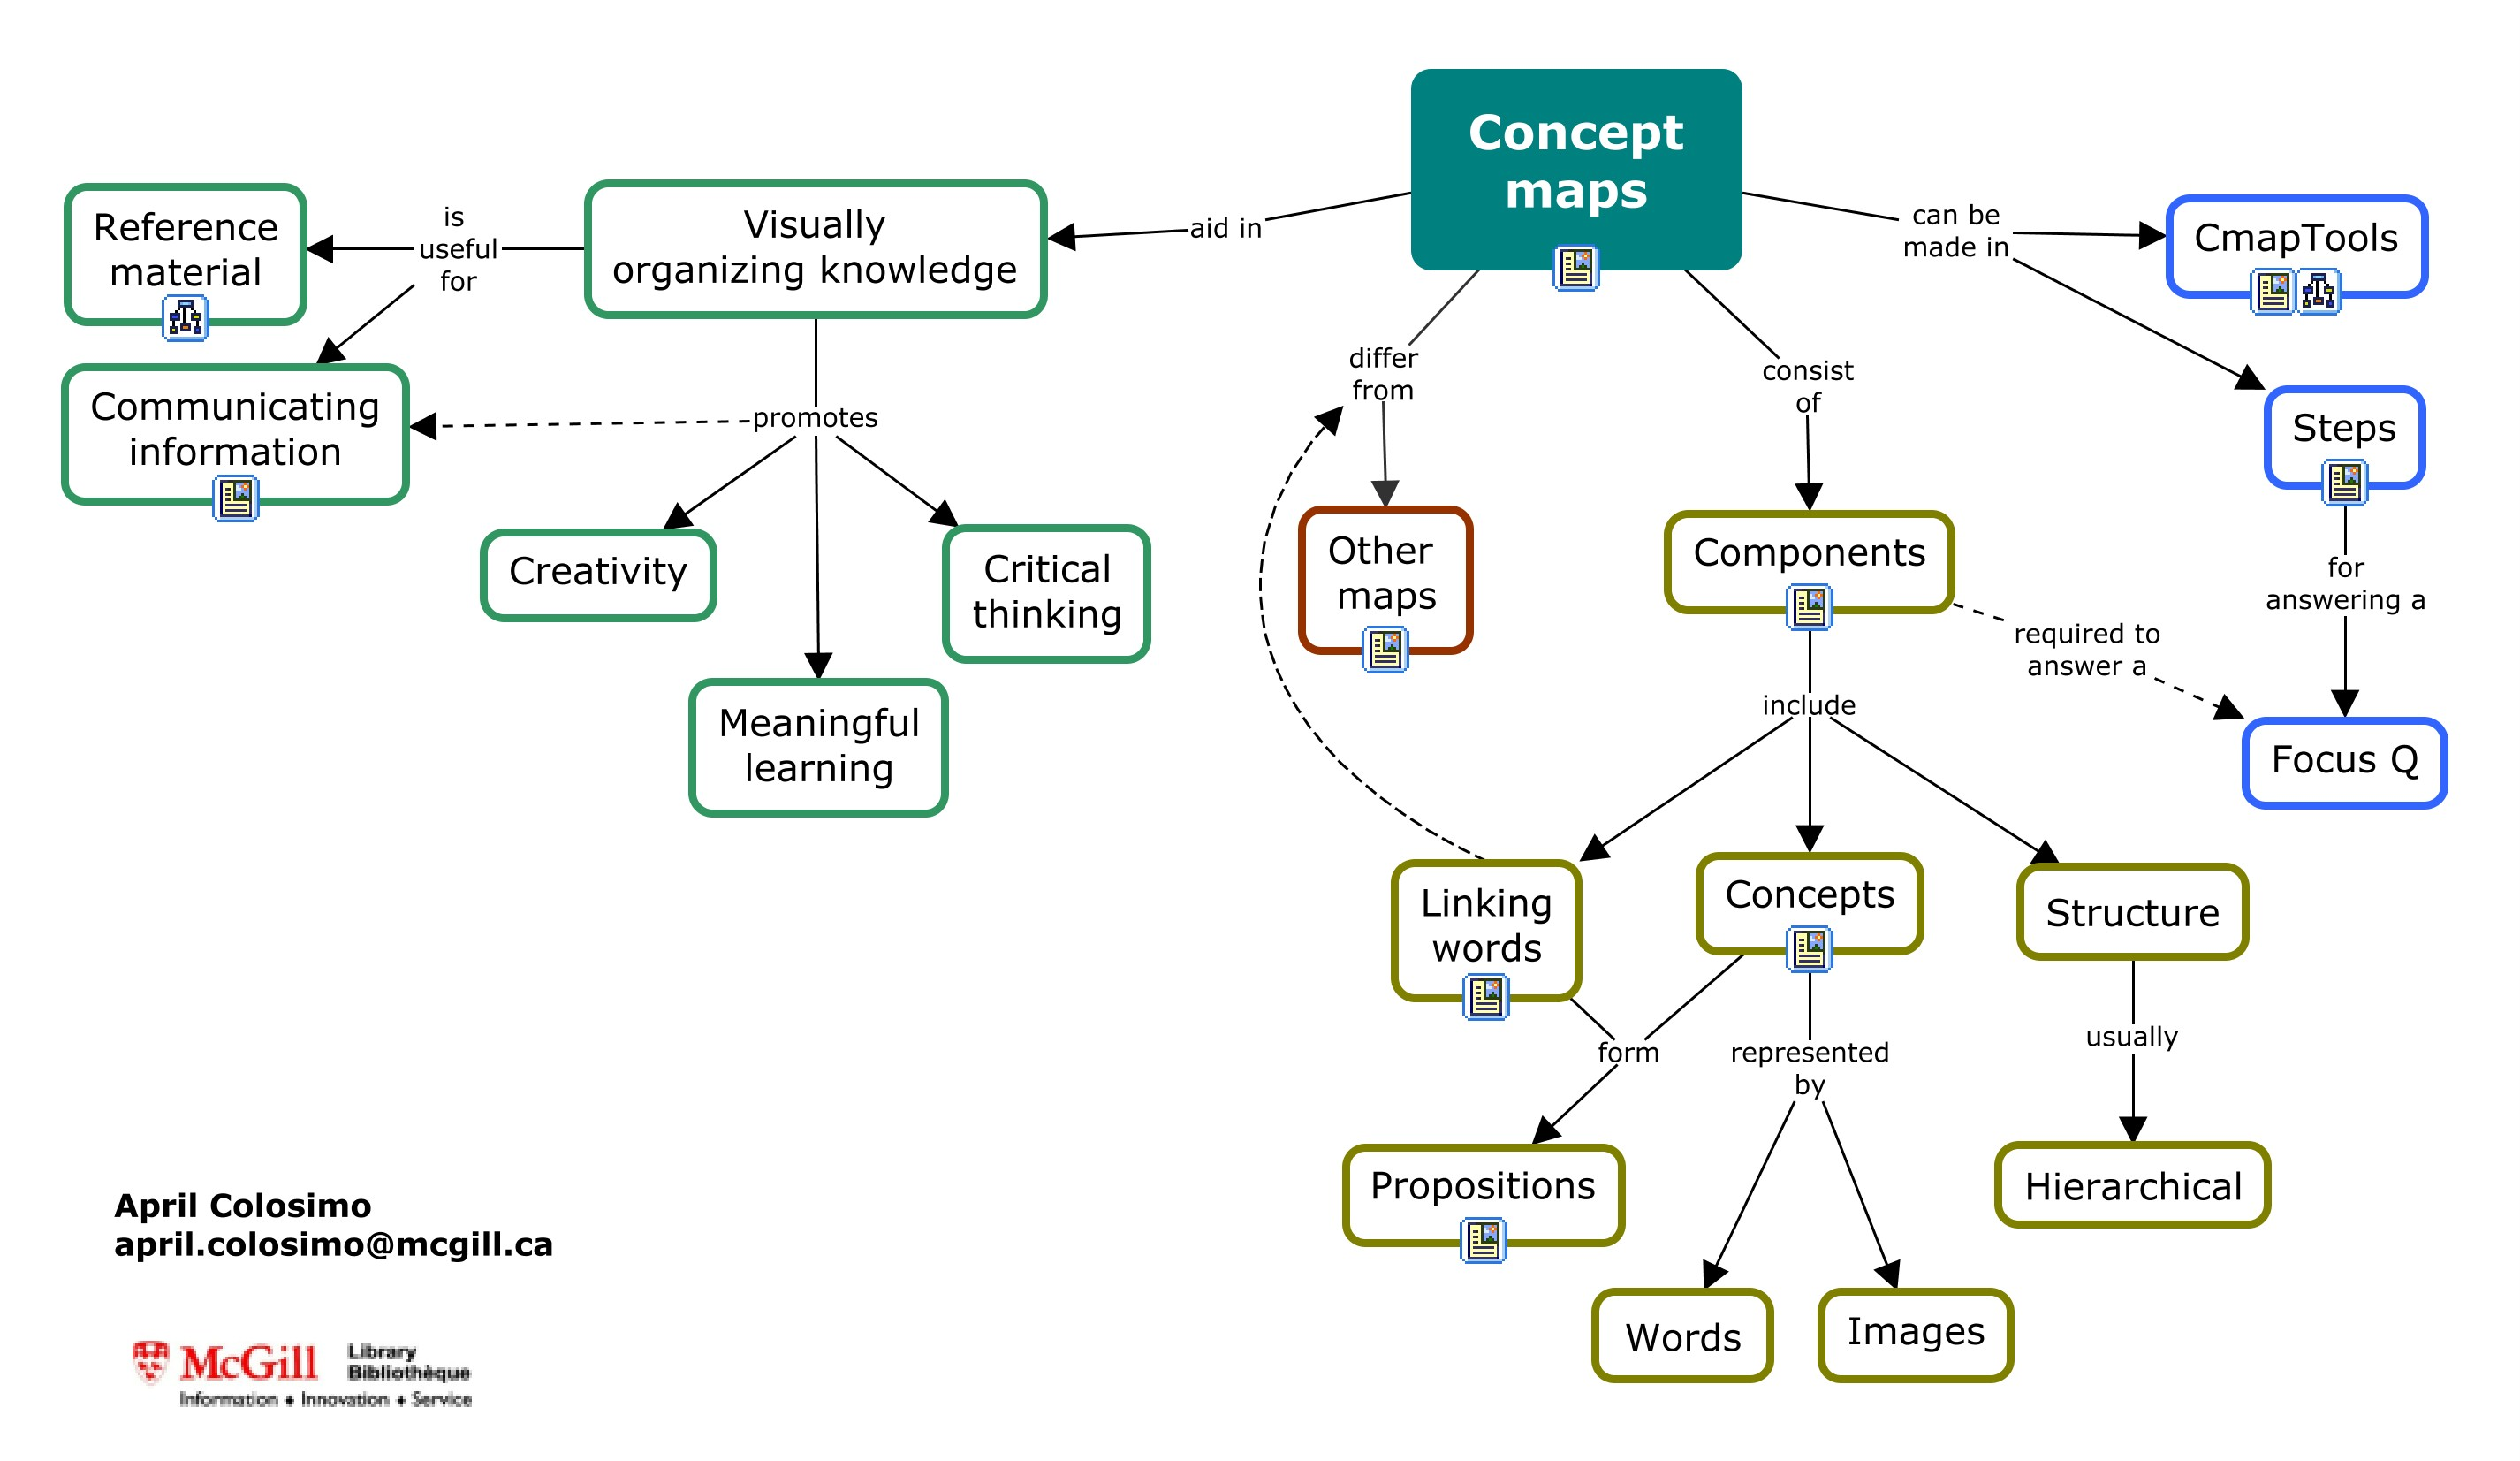 Concept map about concept maps made with CmapTools